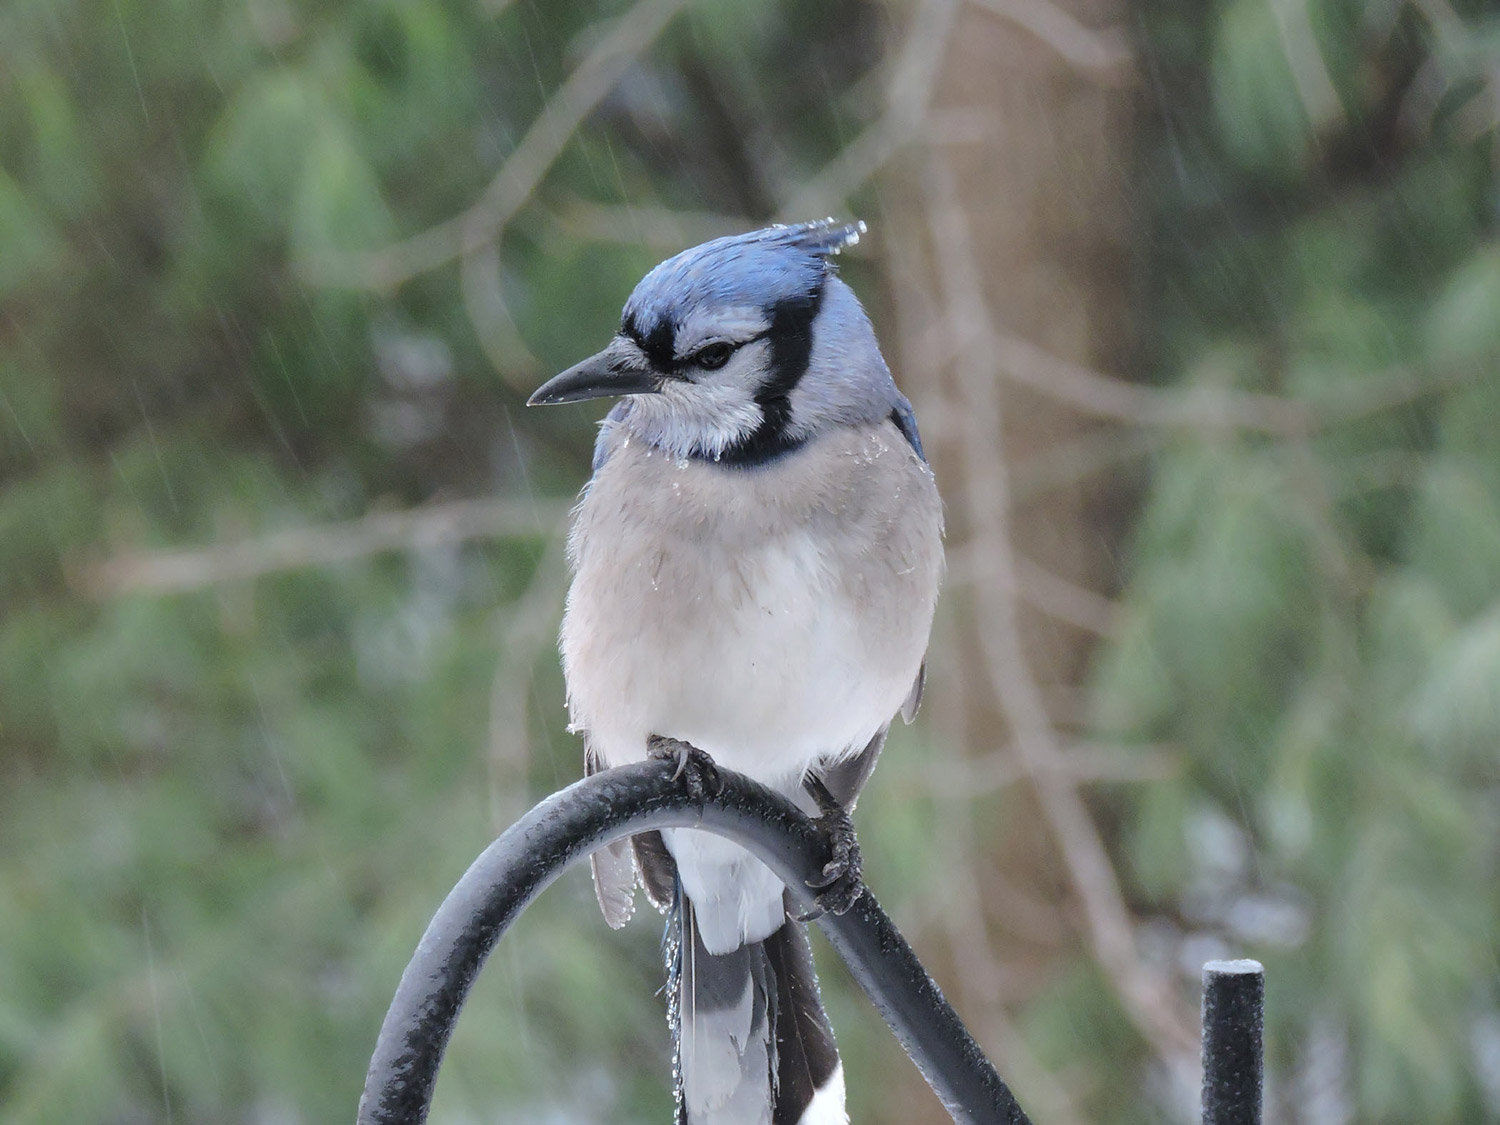 This blue jay stayed perched on the feeder in Kristen Holmberg's Kennebunk yard, seemingly unfazed by the rain.